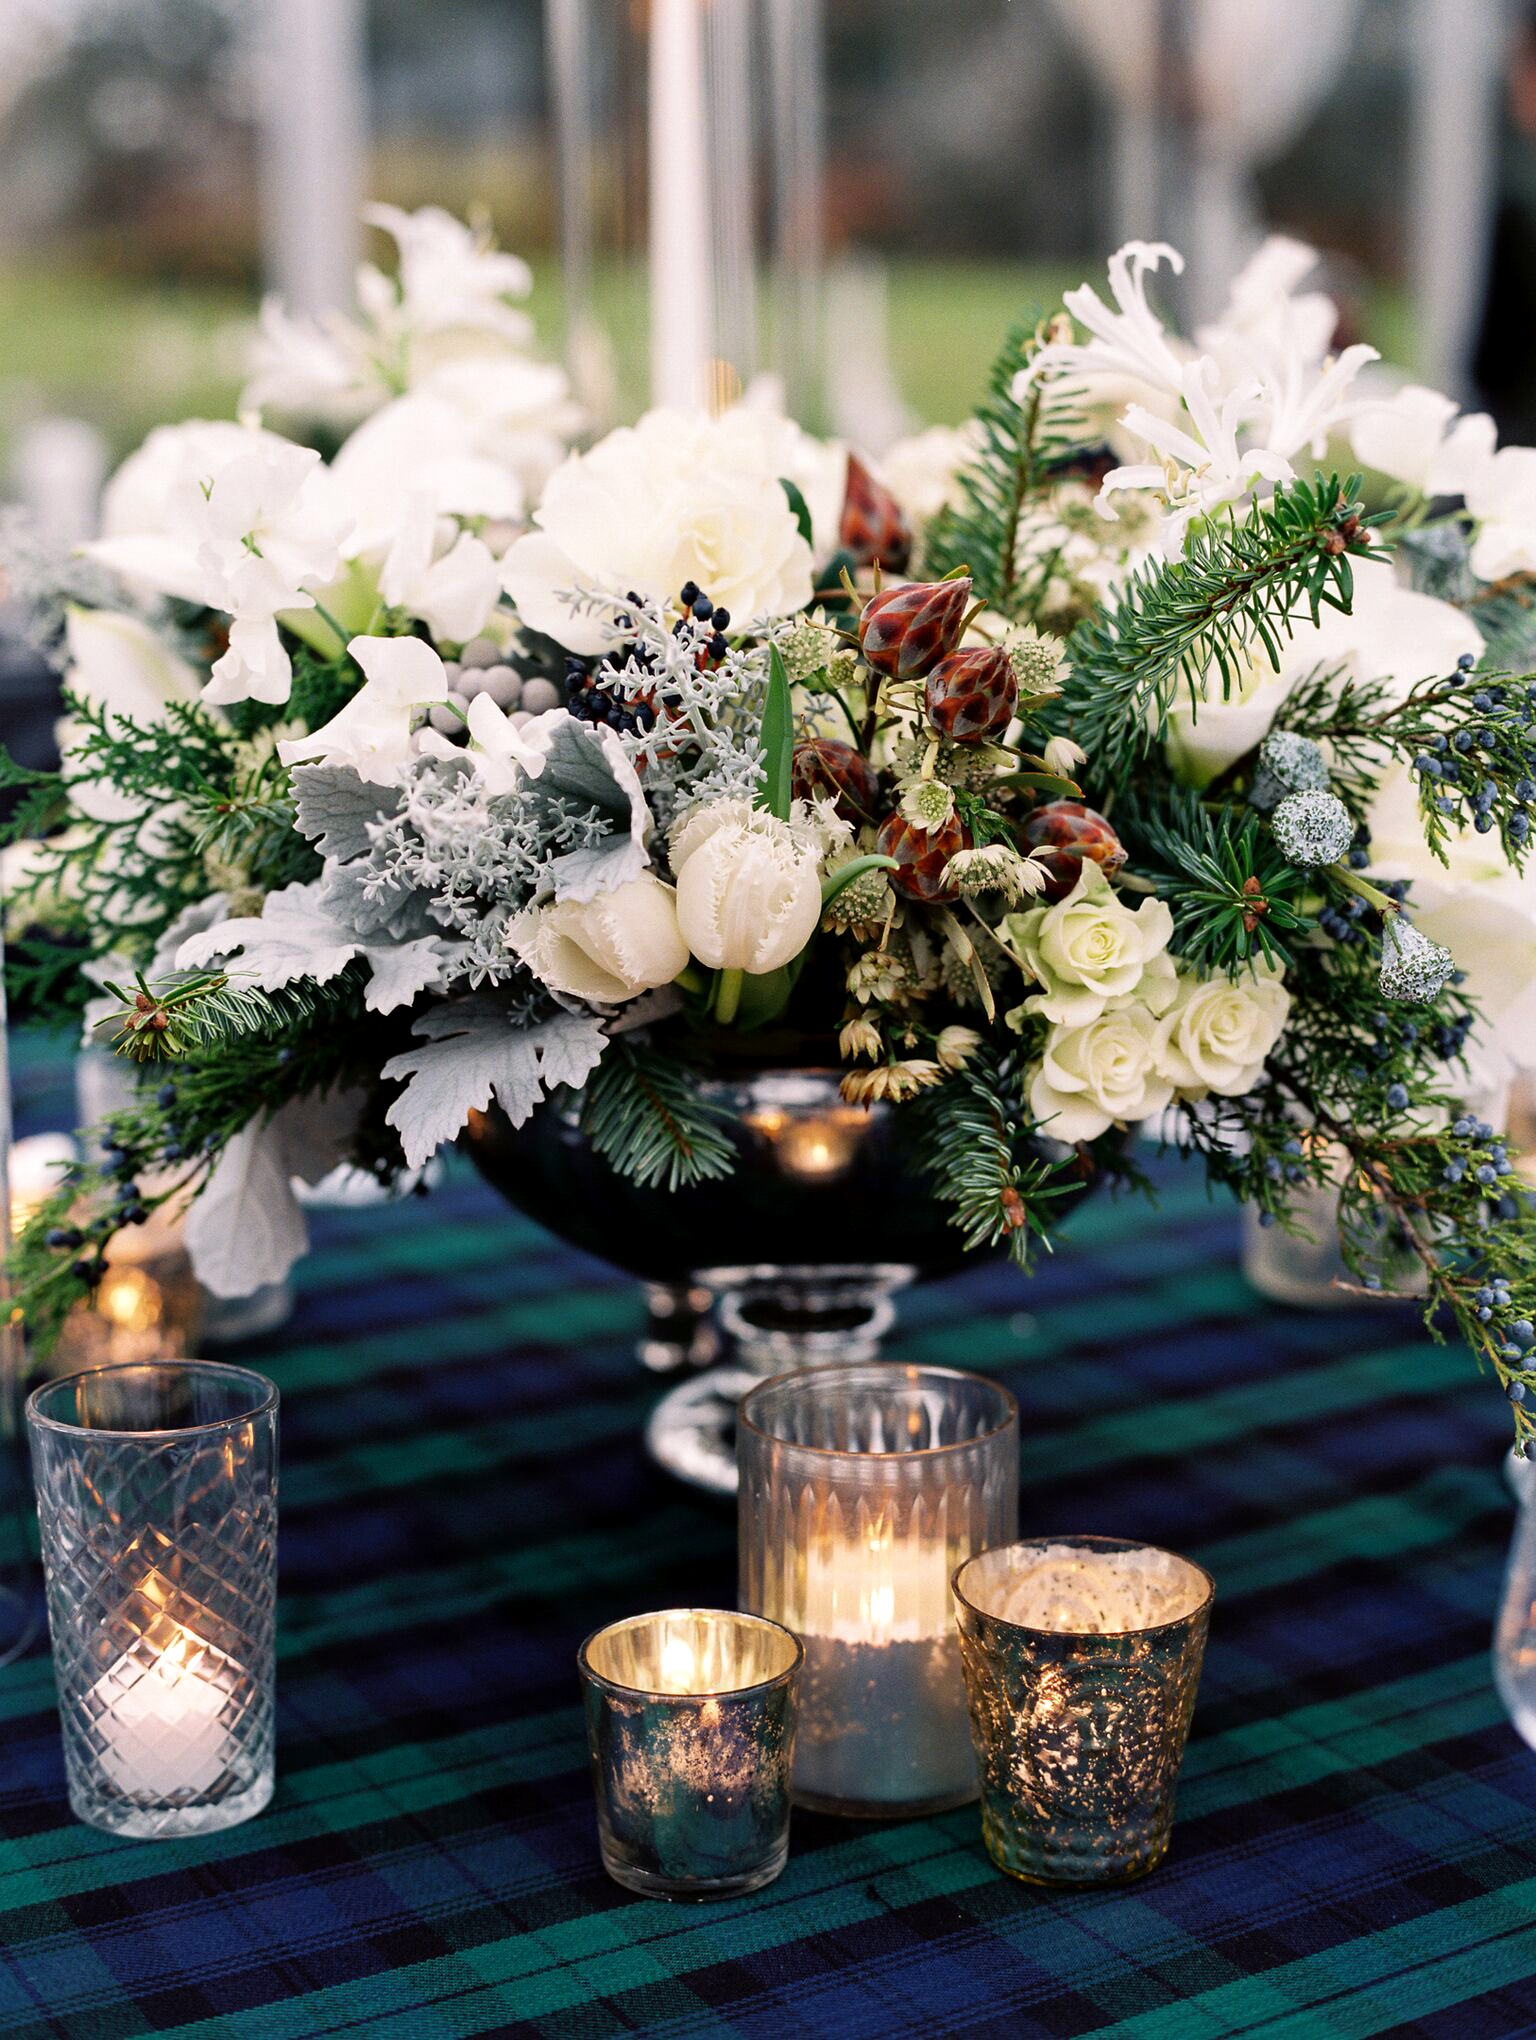 Pleasing Winter Wedding Centerpieces That Nod To The Season Martha Download Free Architecture Designs Sospemadebymaigaardcom